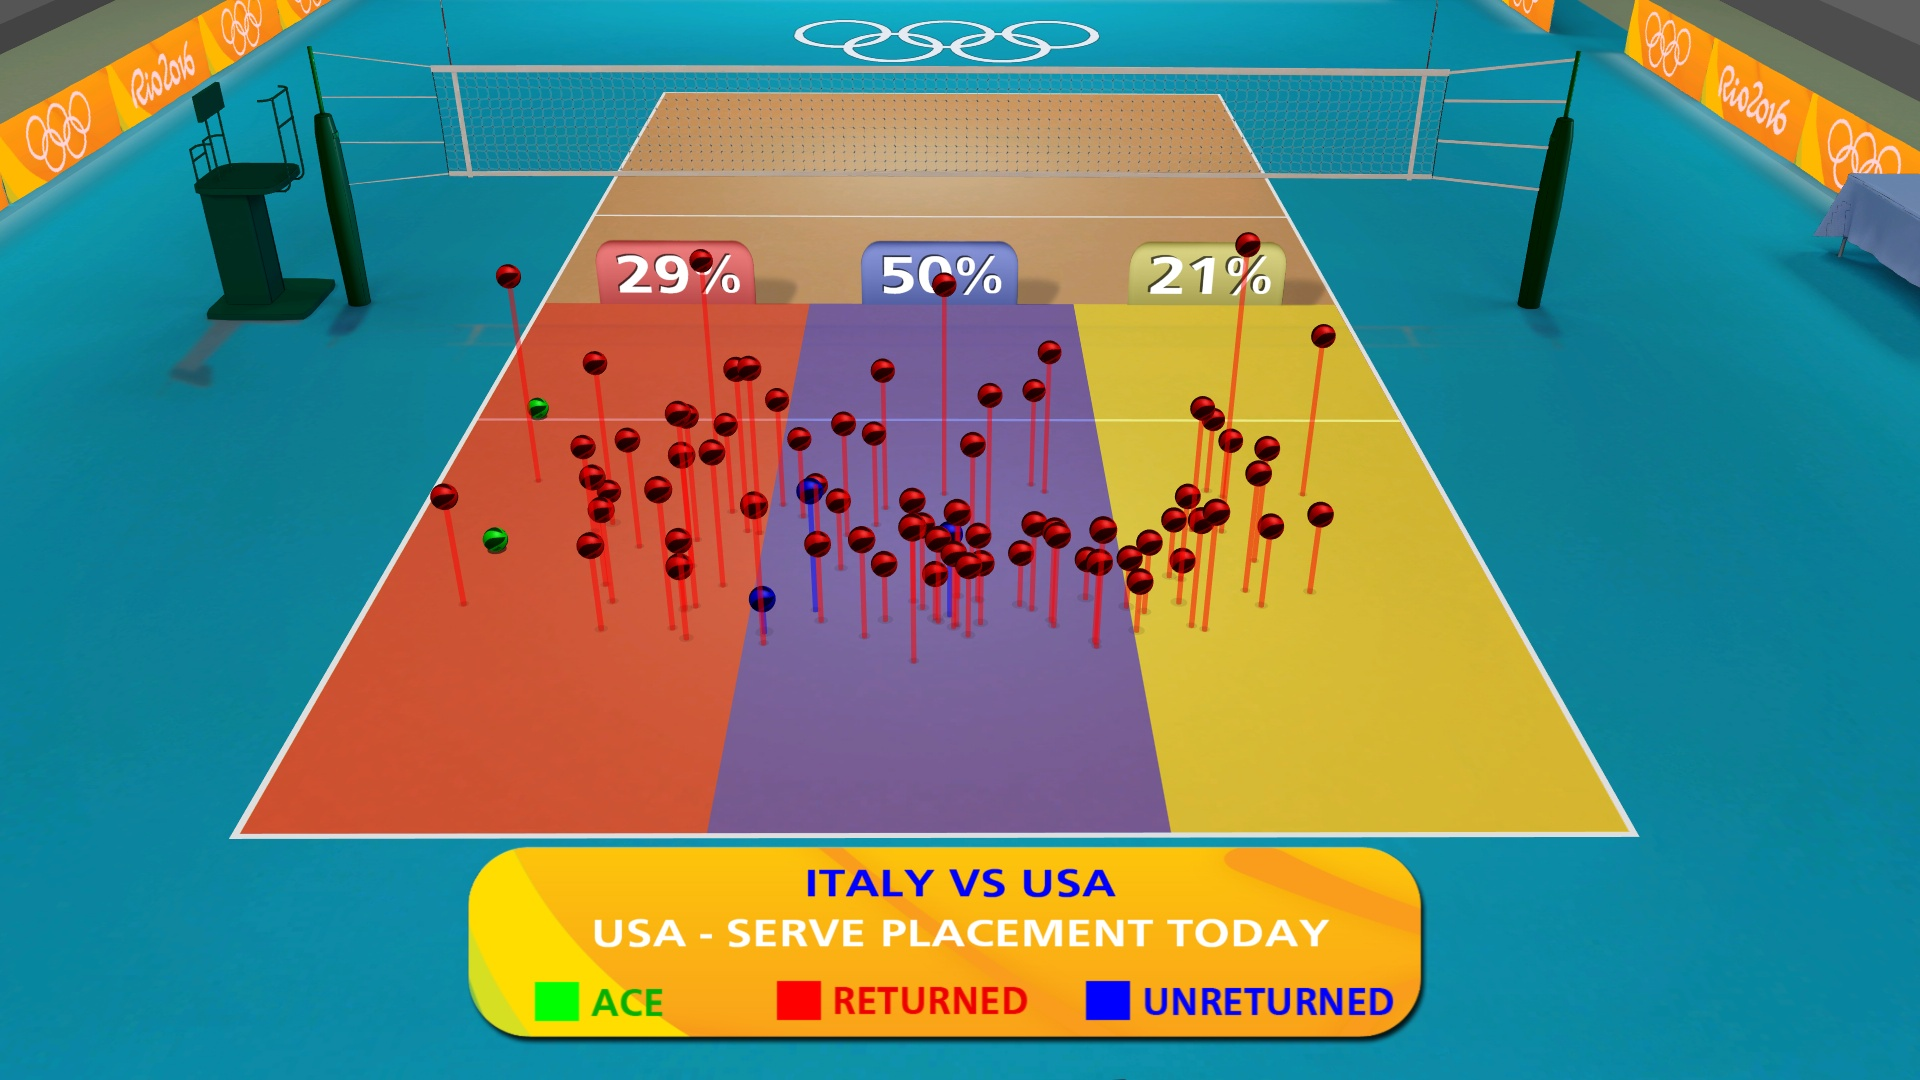 http://www.fivb.org/Vis2009/Images/GetImage.asmx?No=201653347&maxSize=960